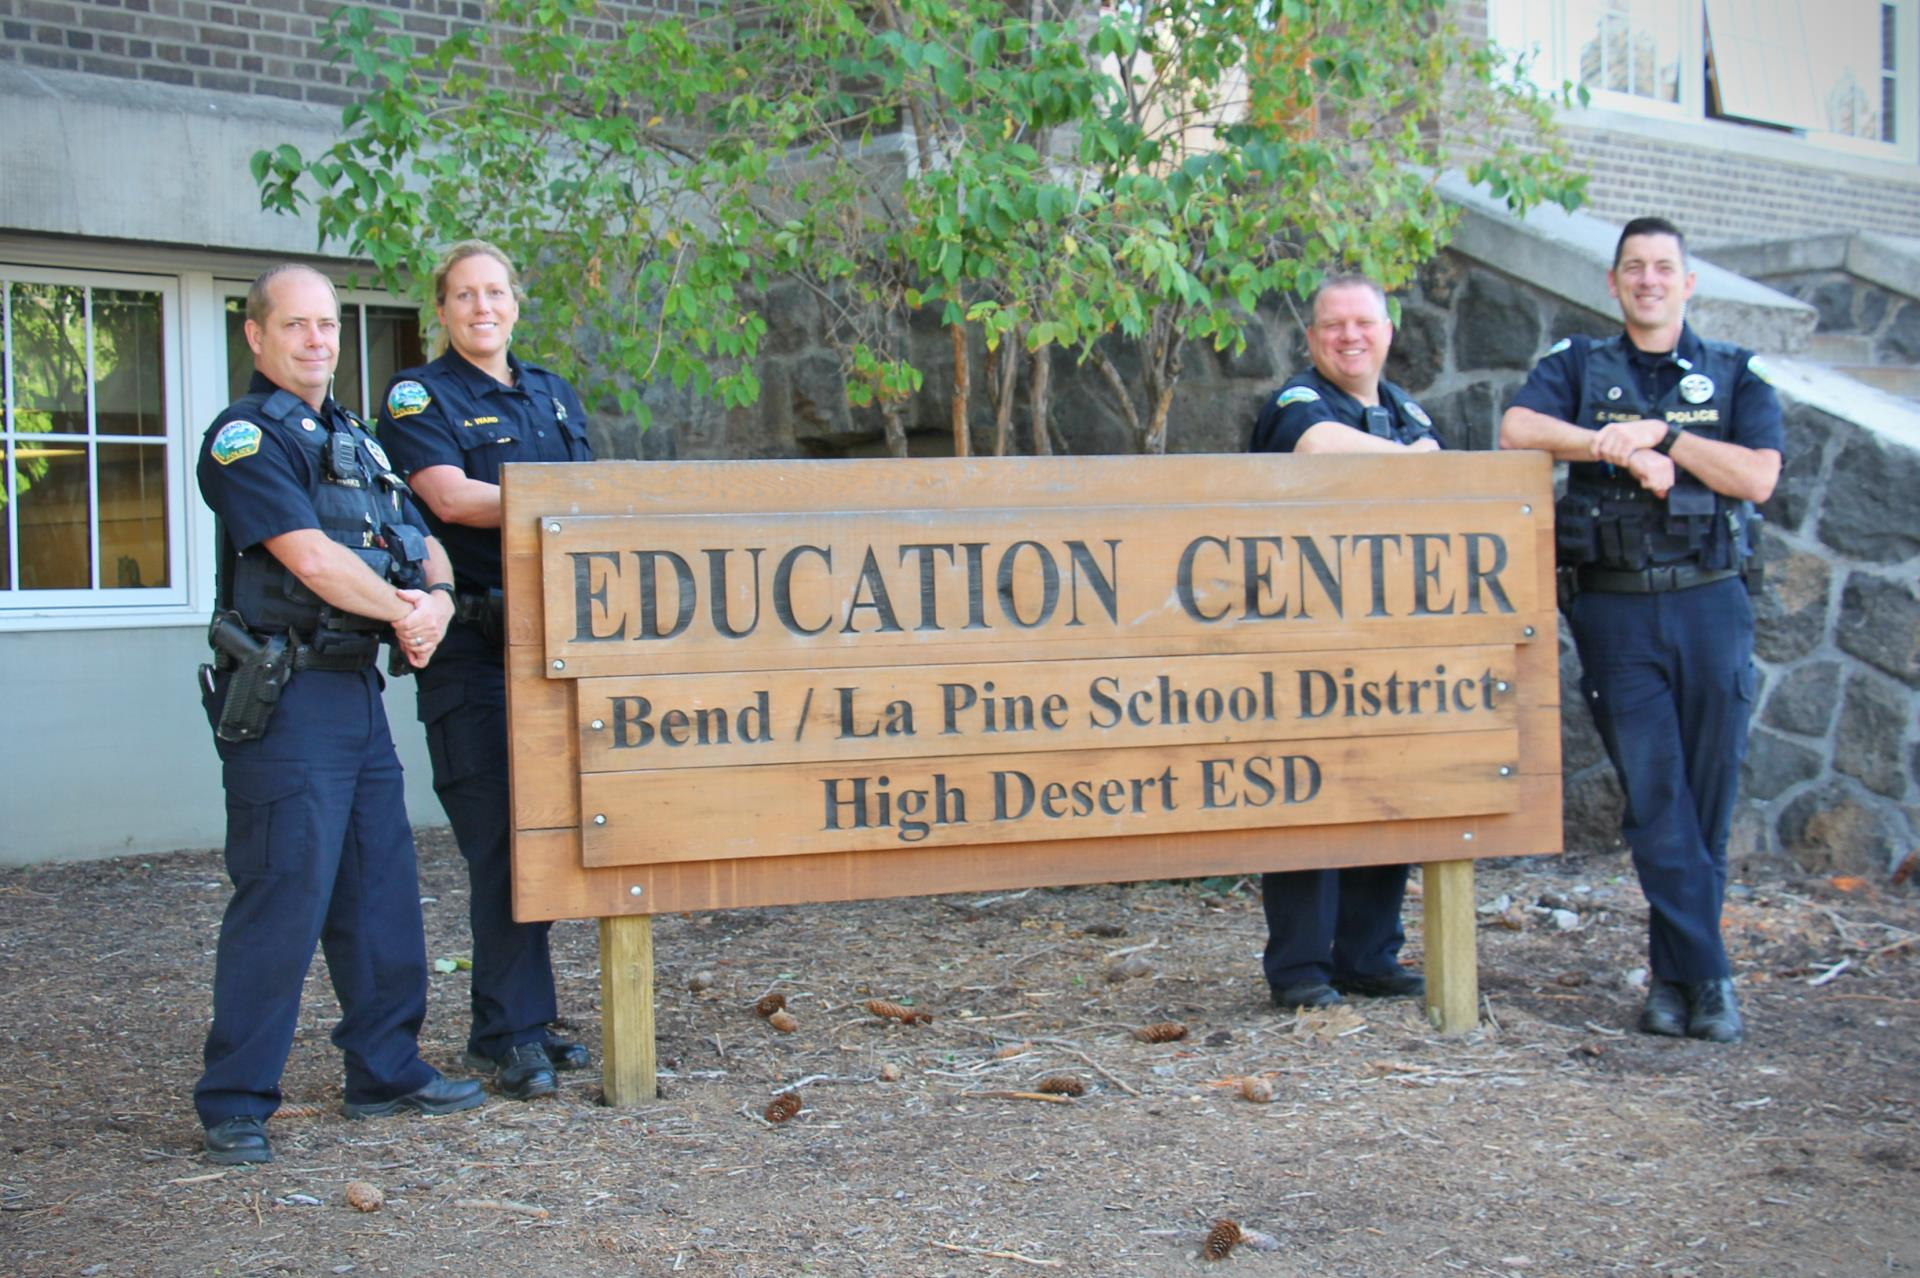 four school resource officers in front of a education center sign